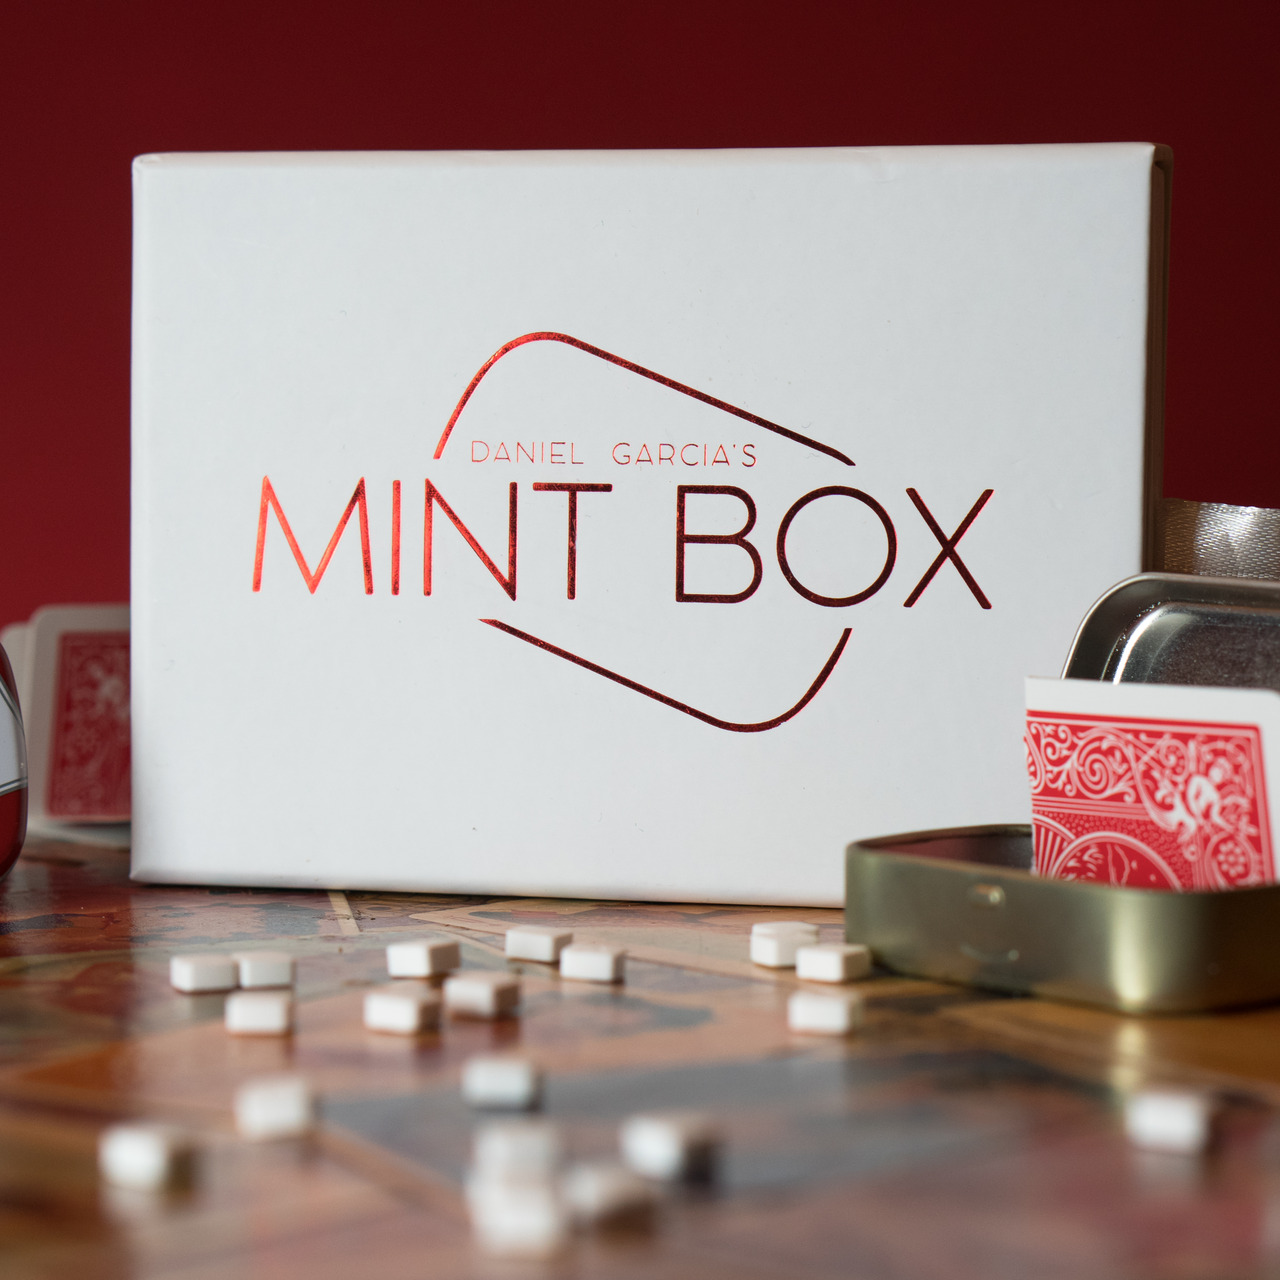 Mint Box By Daniel Garcia,Magic Tricks